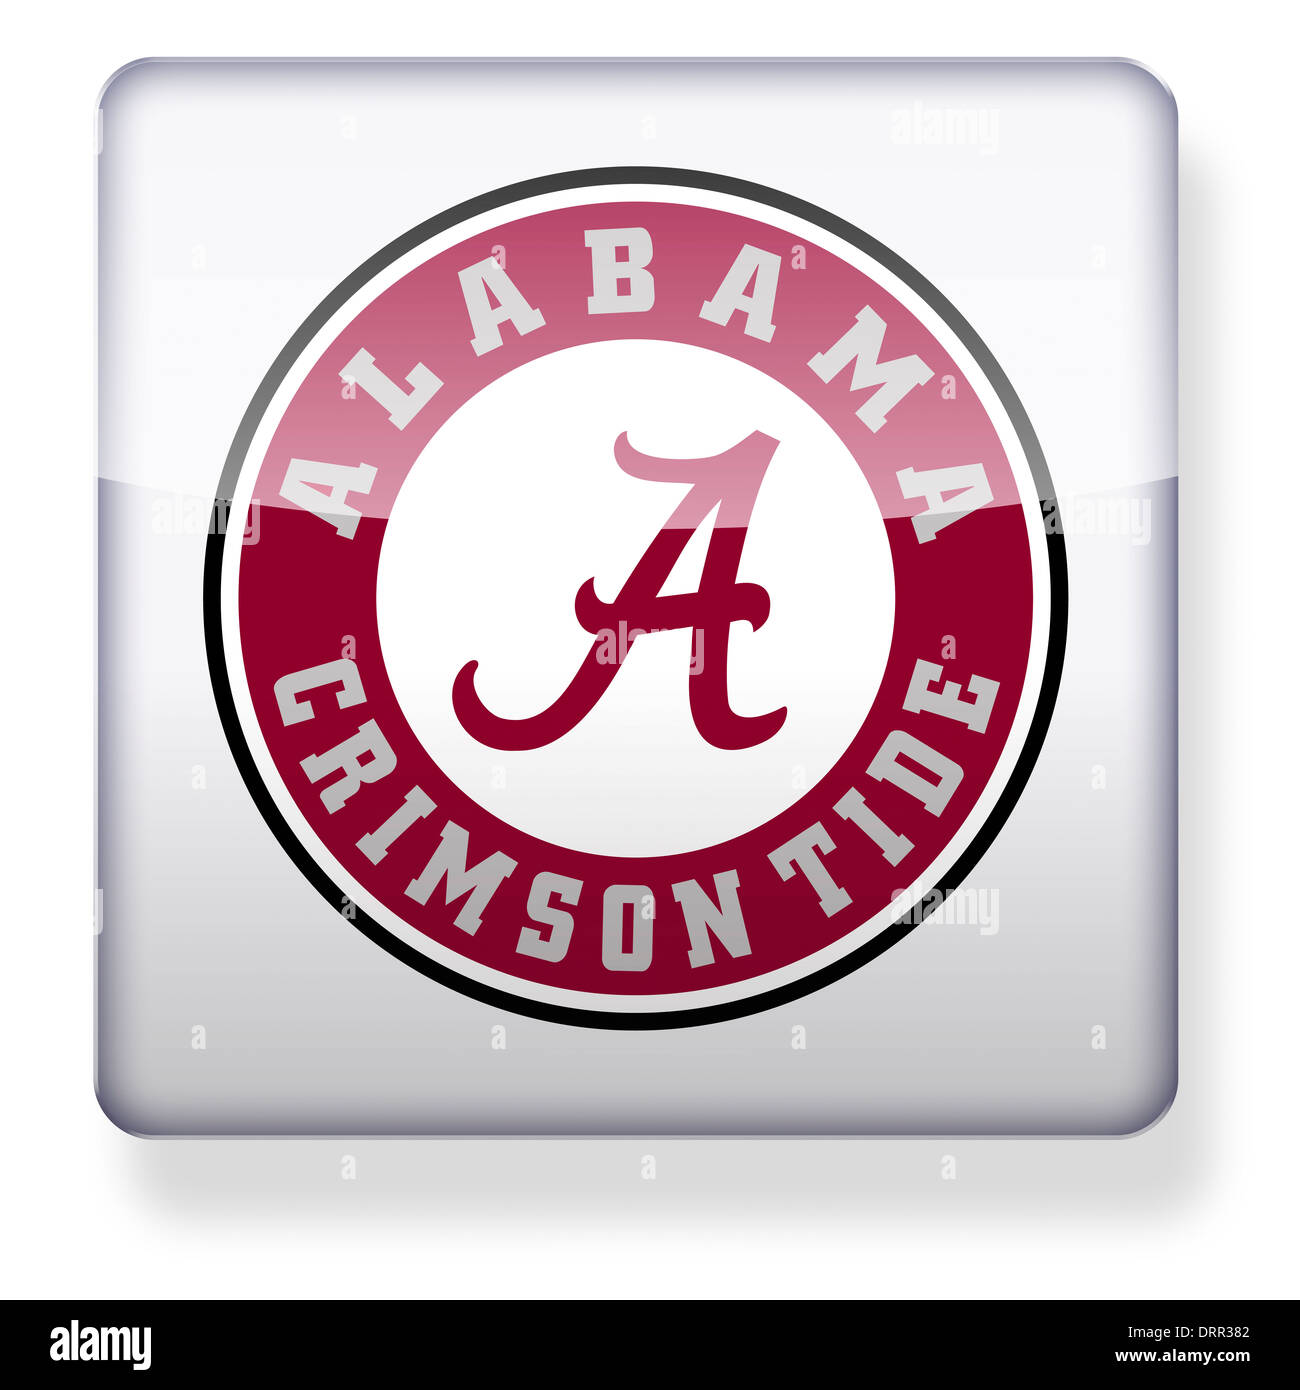 Alabama Crimson Tide US college football logo as an app icon. Clipping path included. - Stock Image